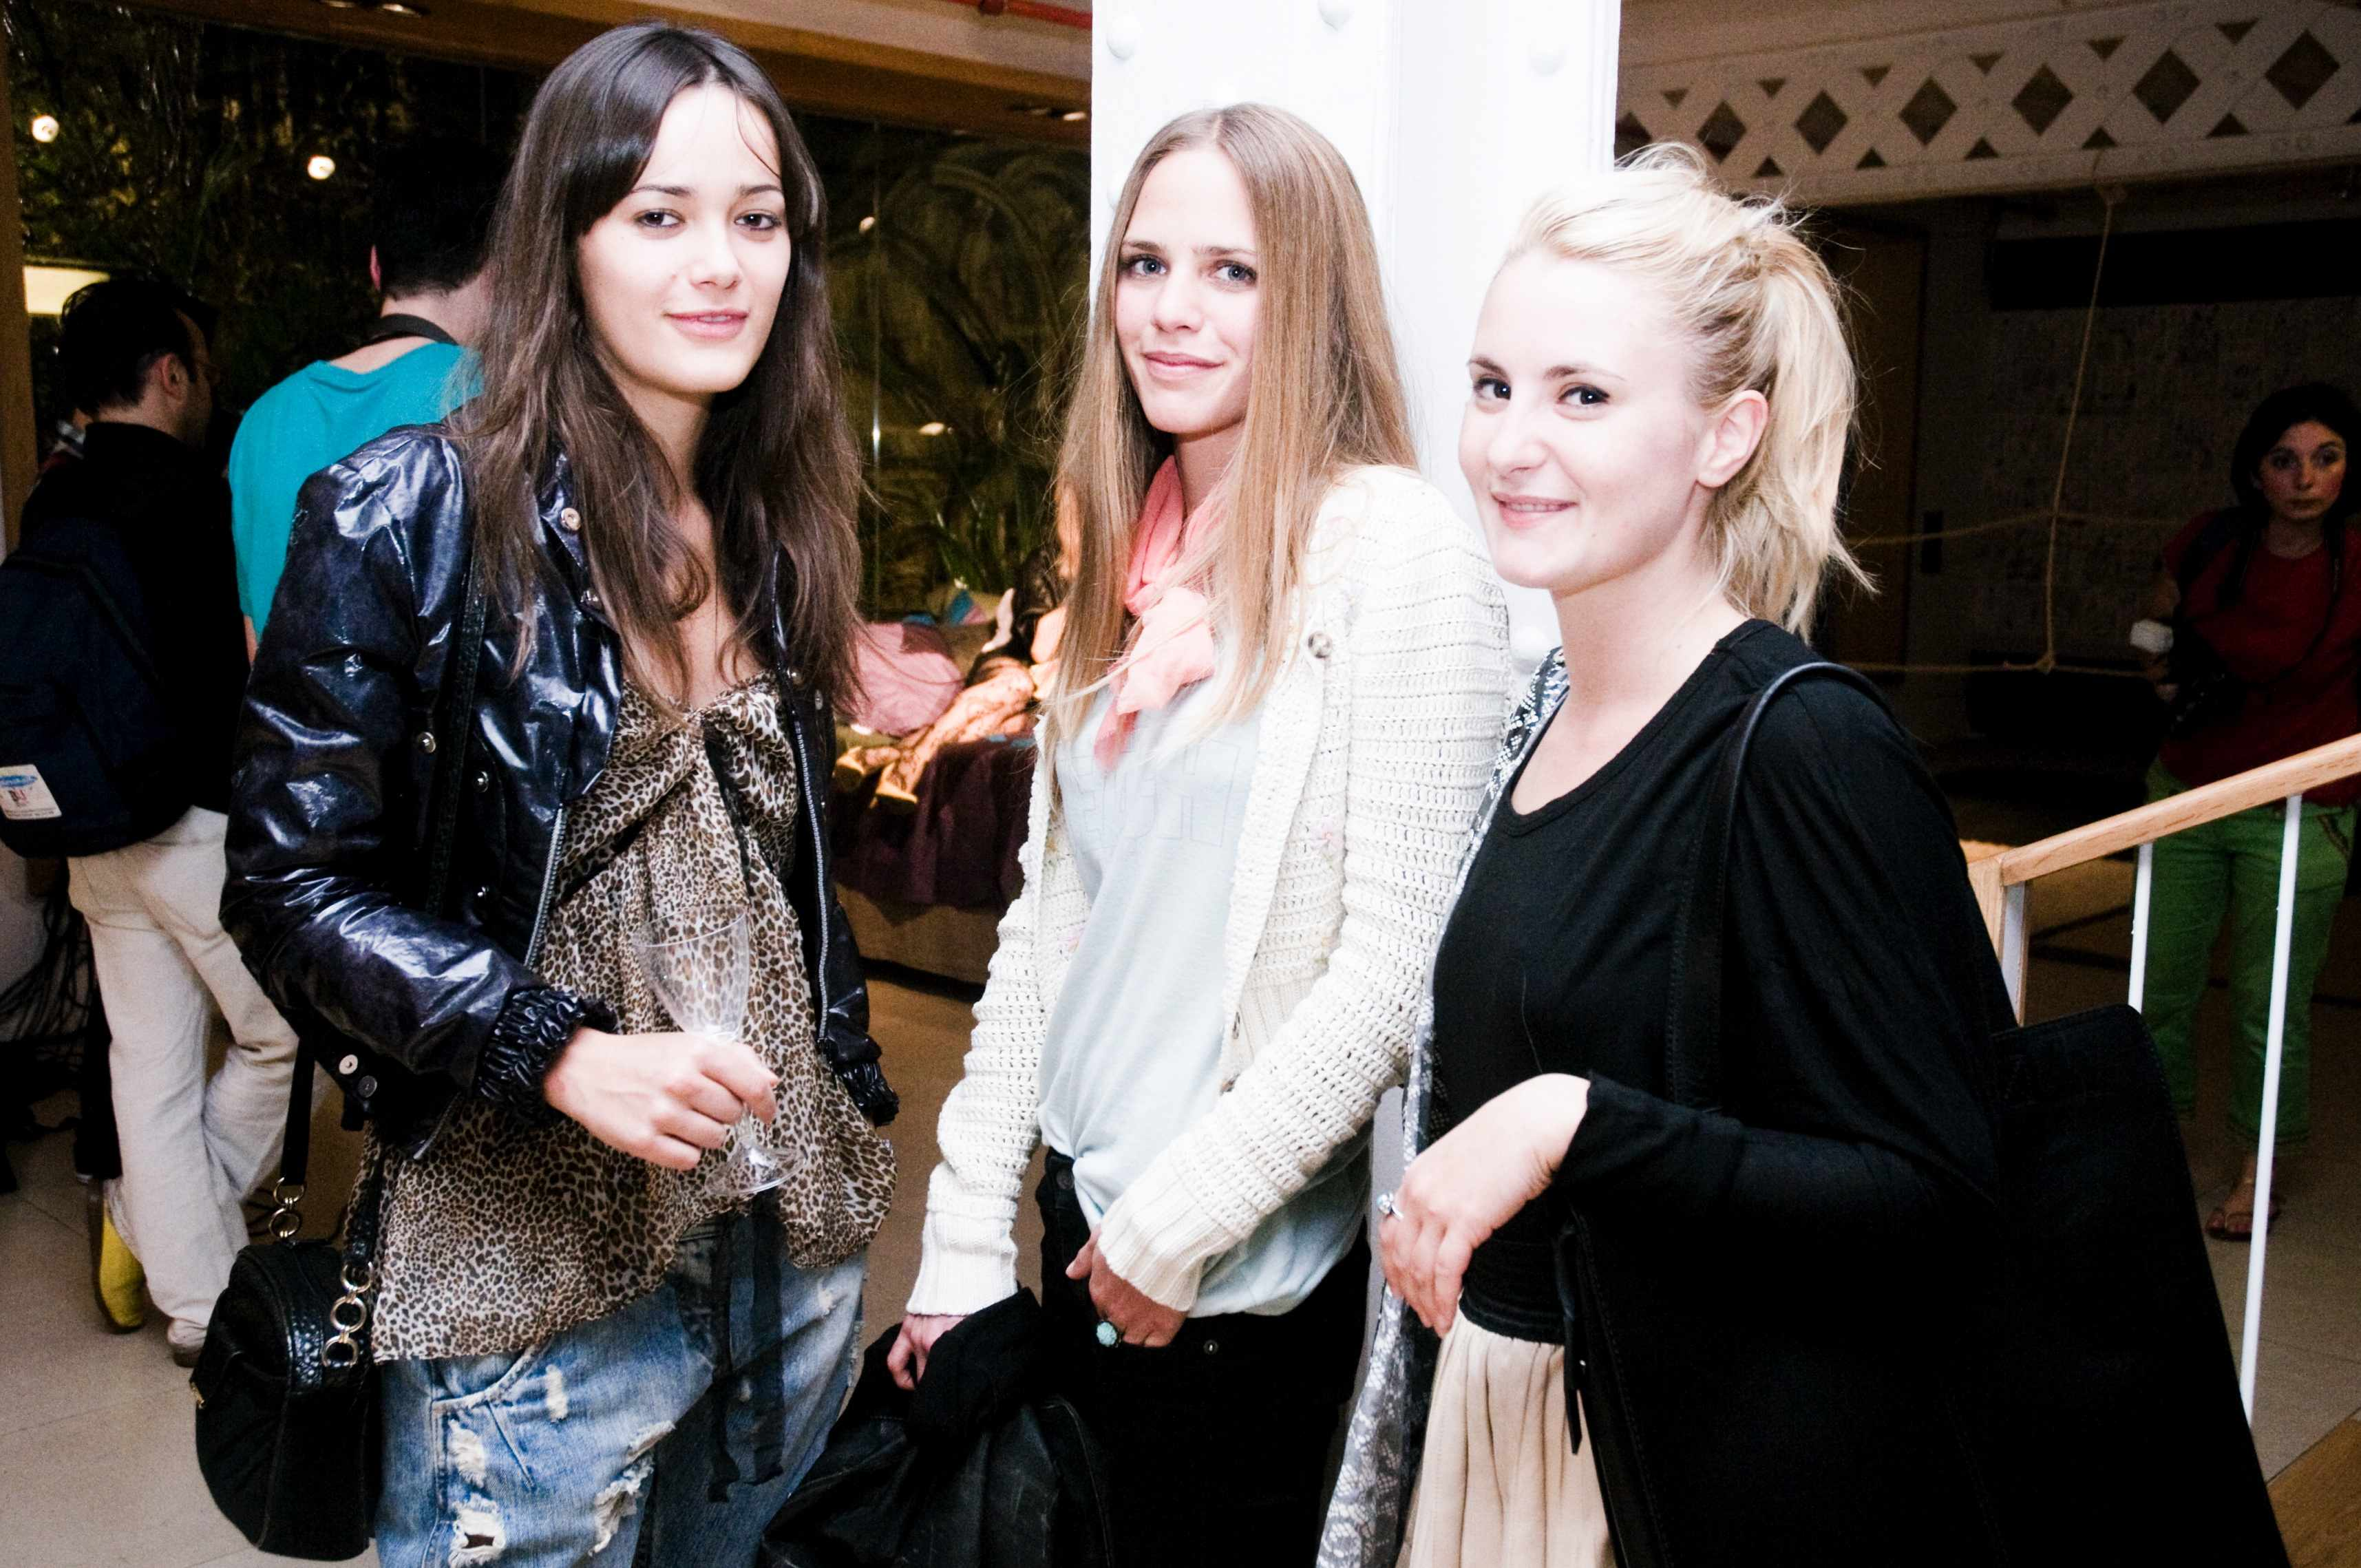 Girls (Fiesta Le Cool and Tendencias.tv)